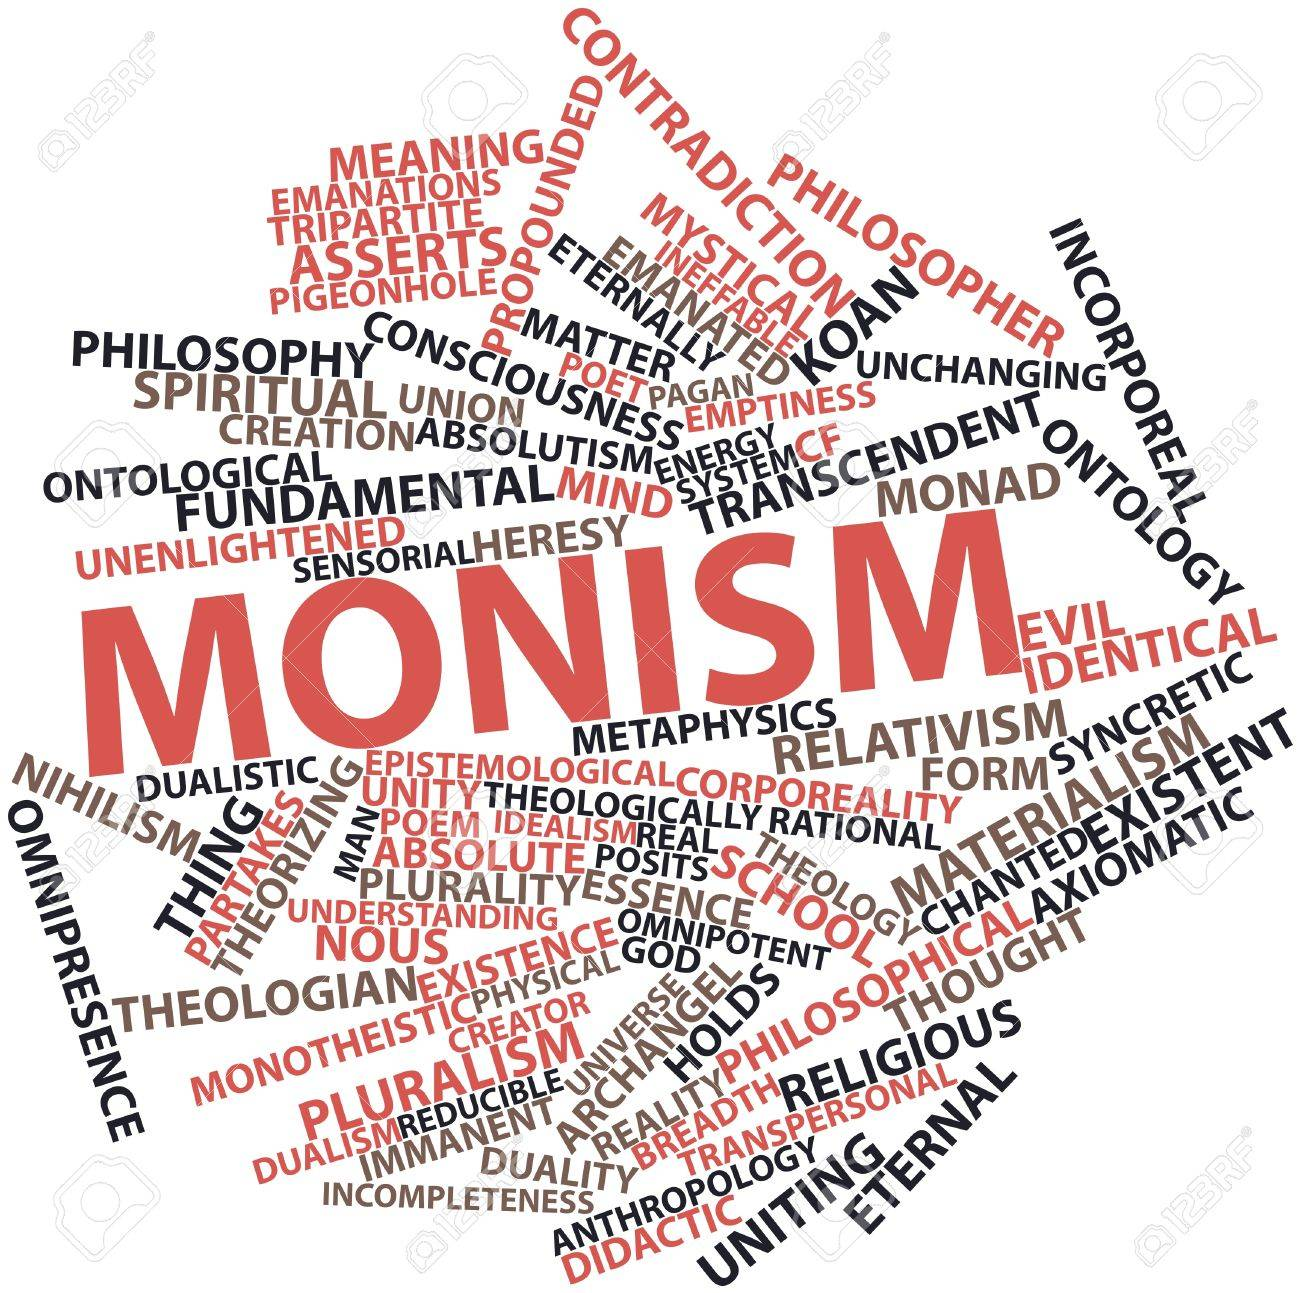 Abstract word cloud for Monism with related tags and terms - 17198140